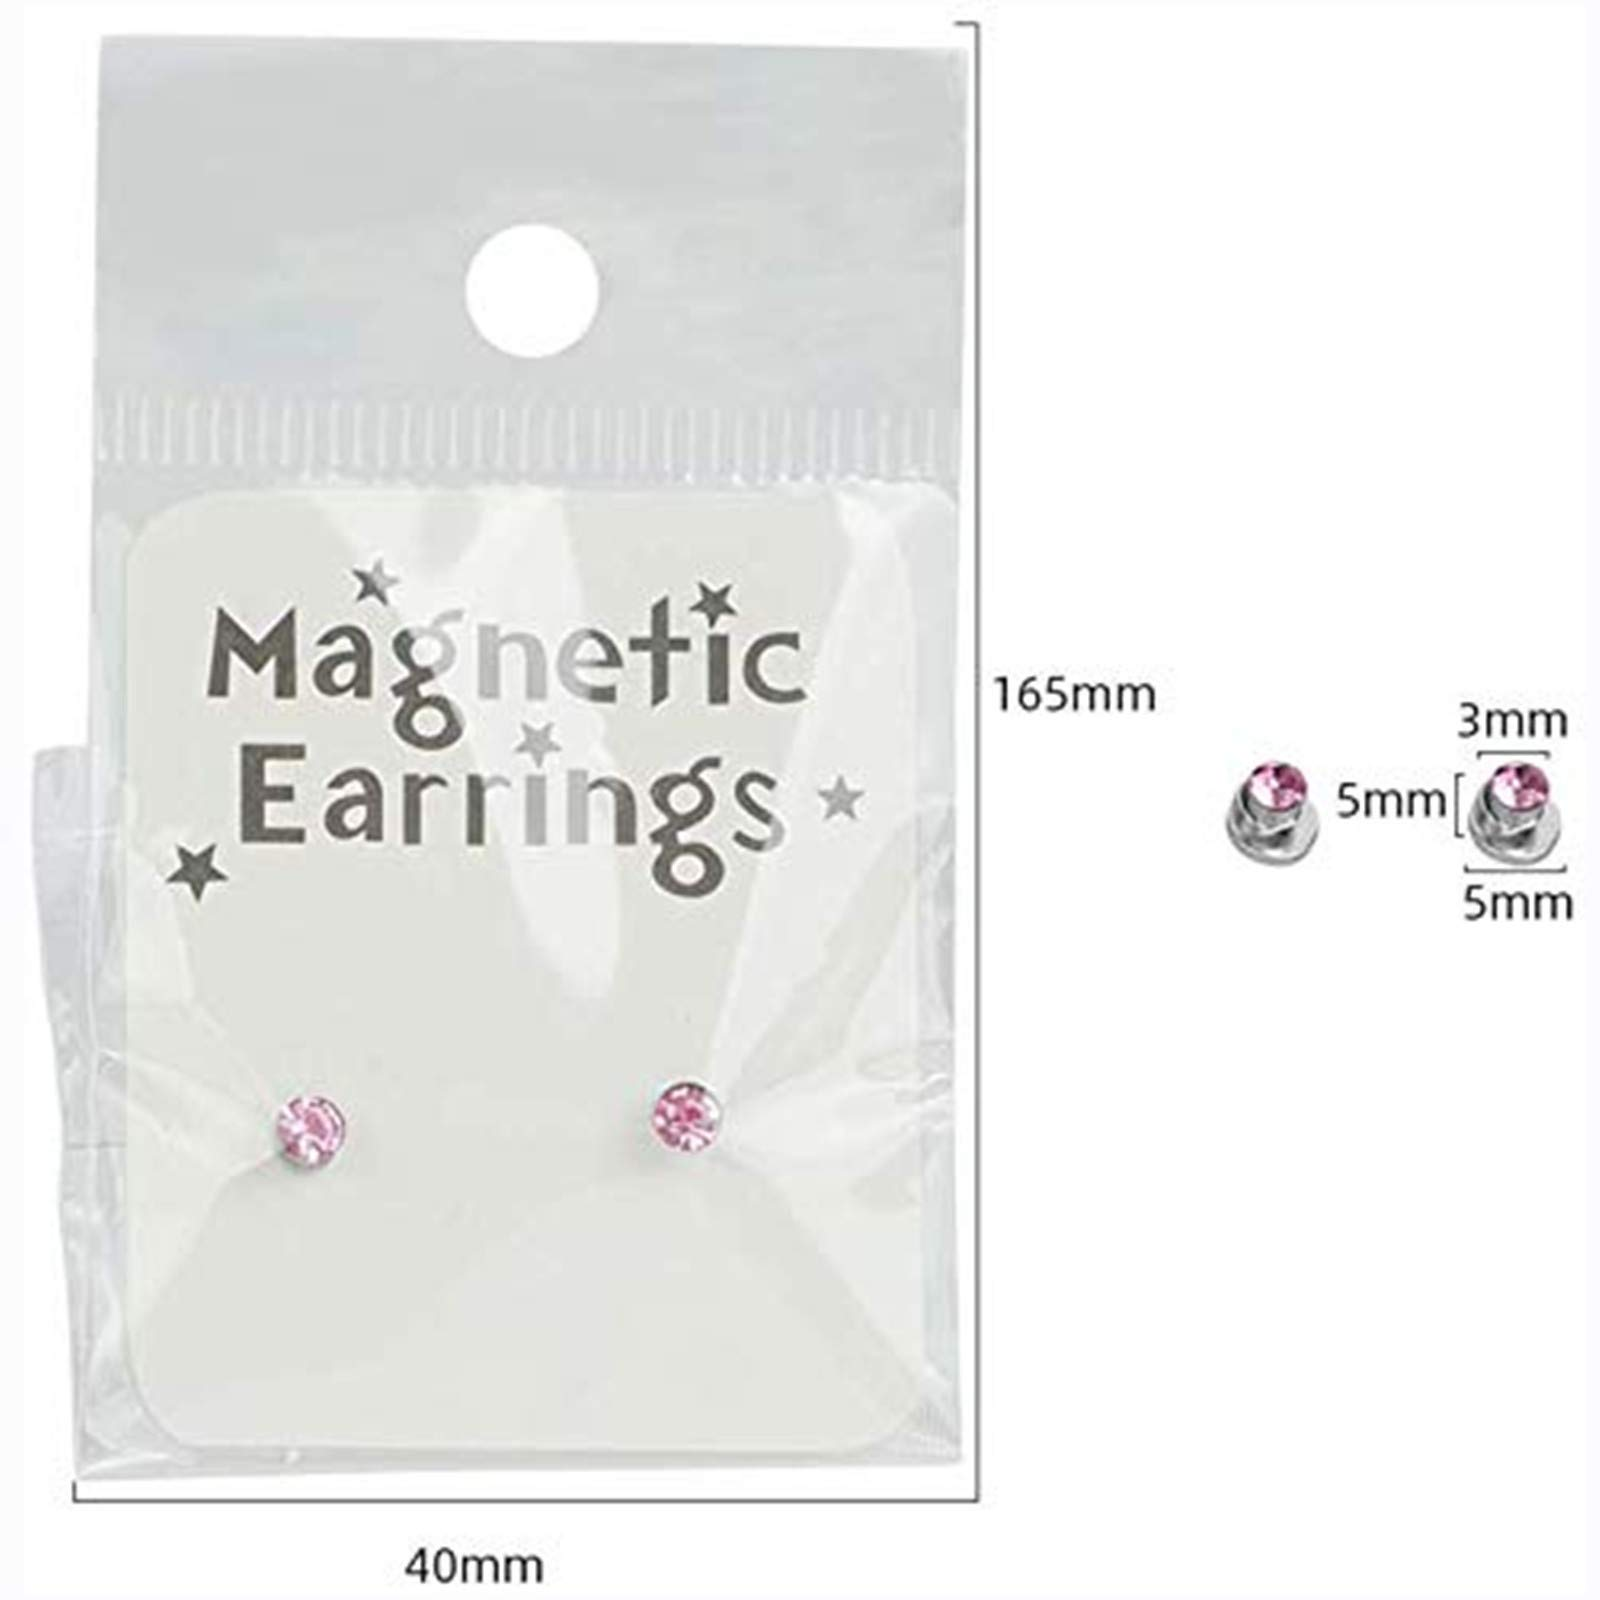 3mm Crystal Magnetic Stud Earring Magnet Nose Ear Lip Stud Non Piercing Tragus Nose Stud 8 Pairs/Pack (8 Pairs Multi)